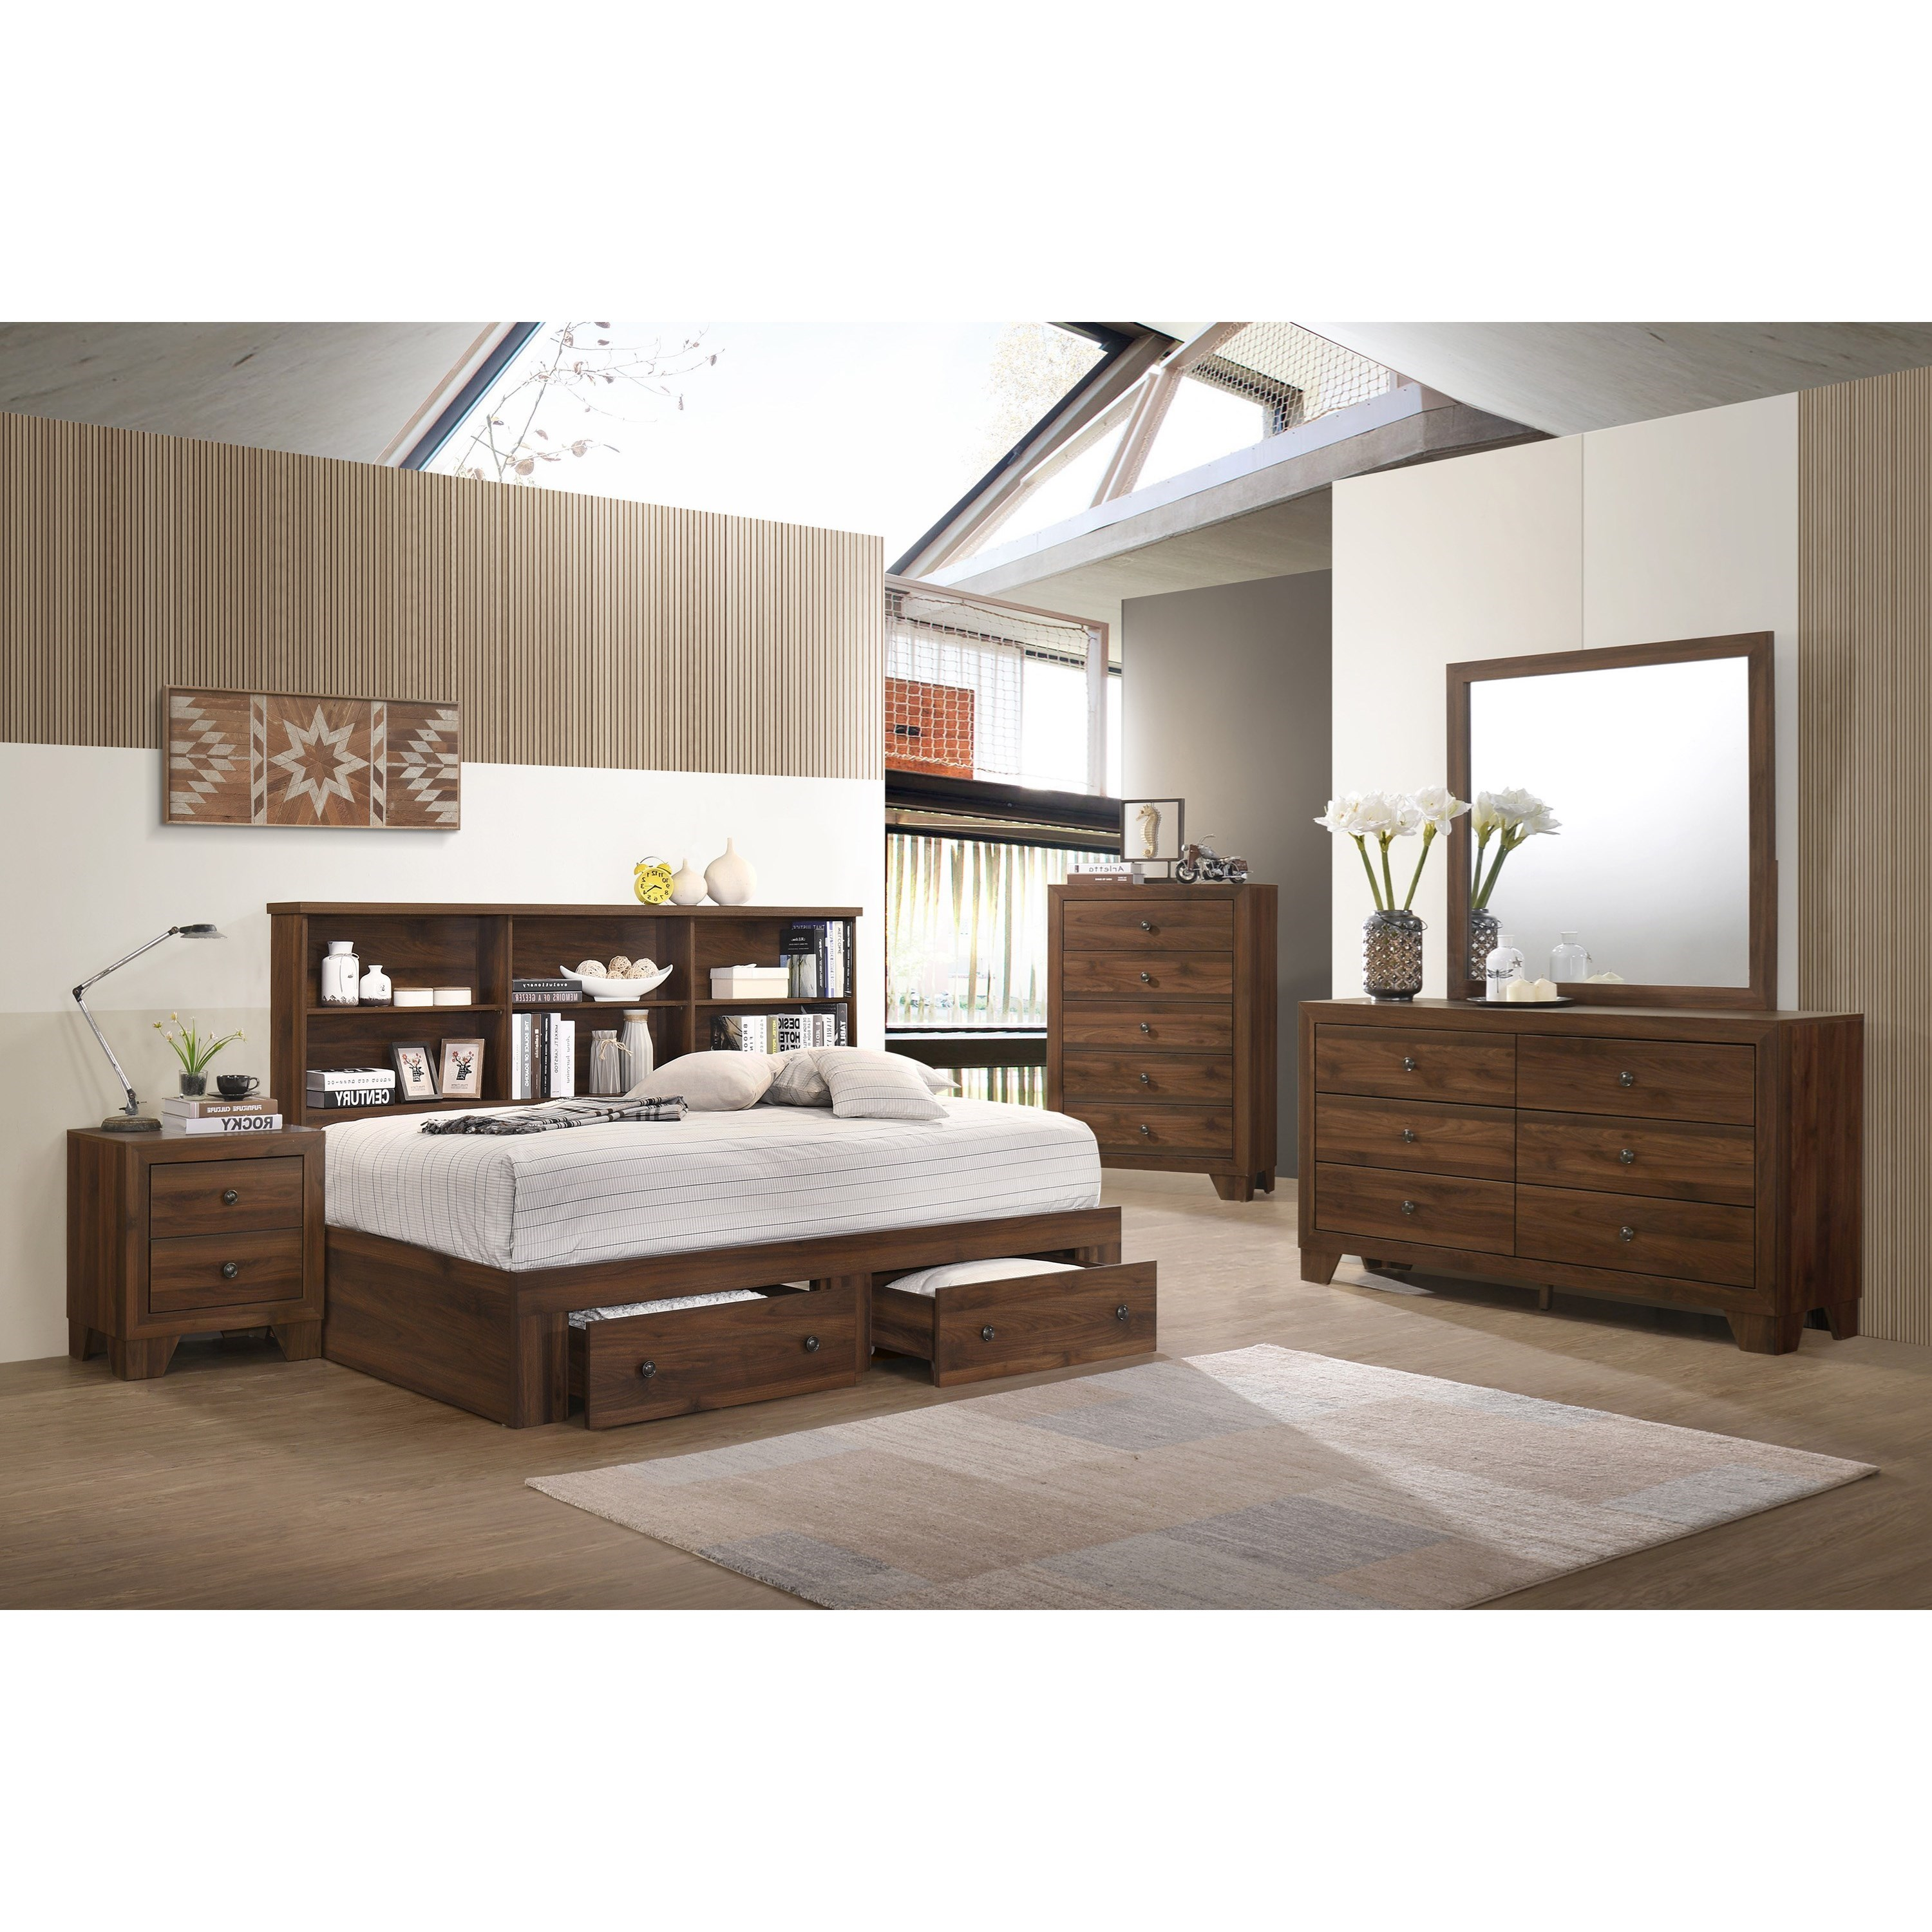 Millie Twin Daybed Bedroom Group by Crown Mark at Northeast Factory Direct